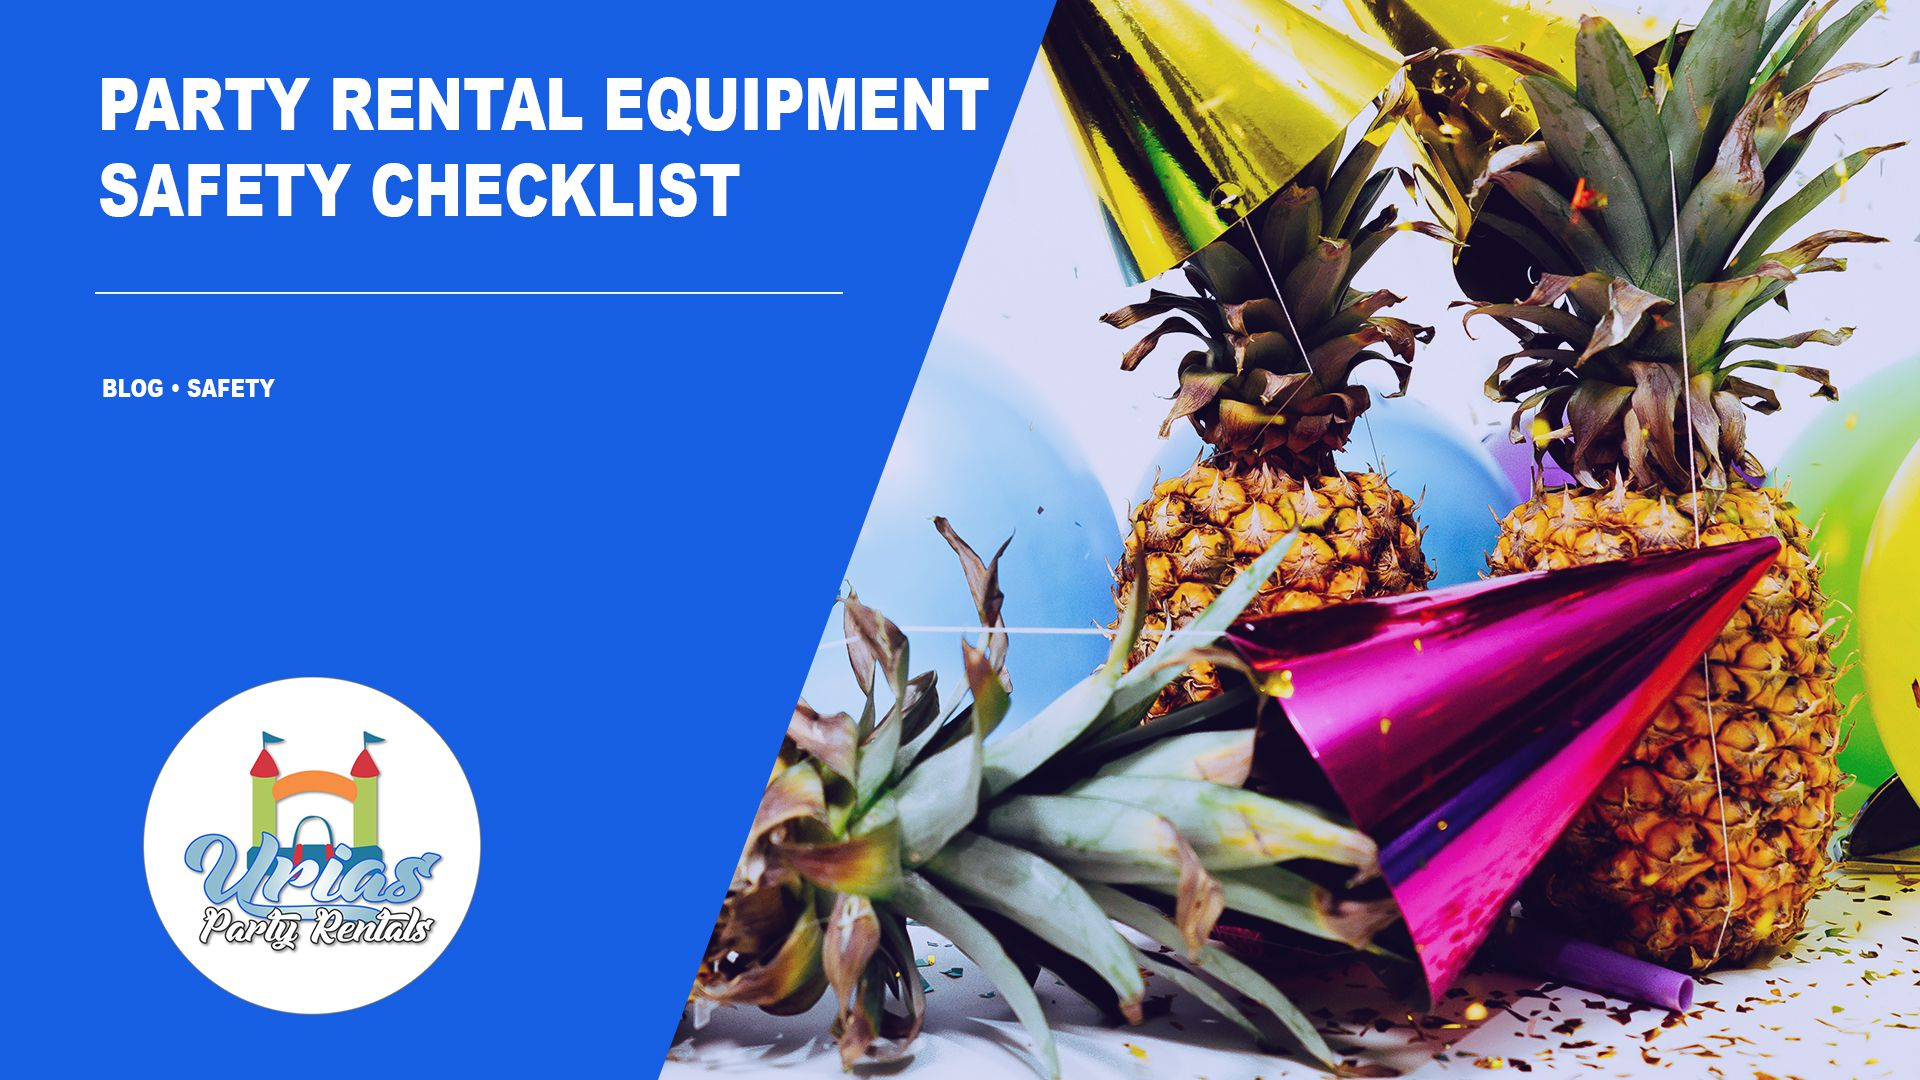 Learn tips for party rental equipment safety